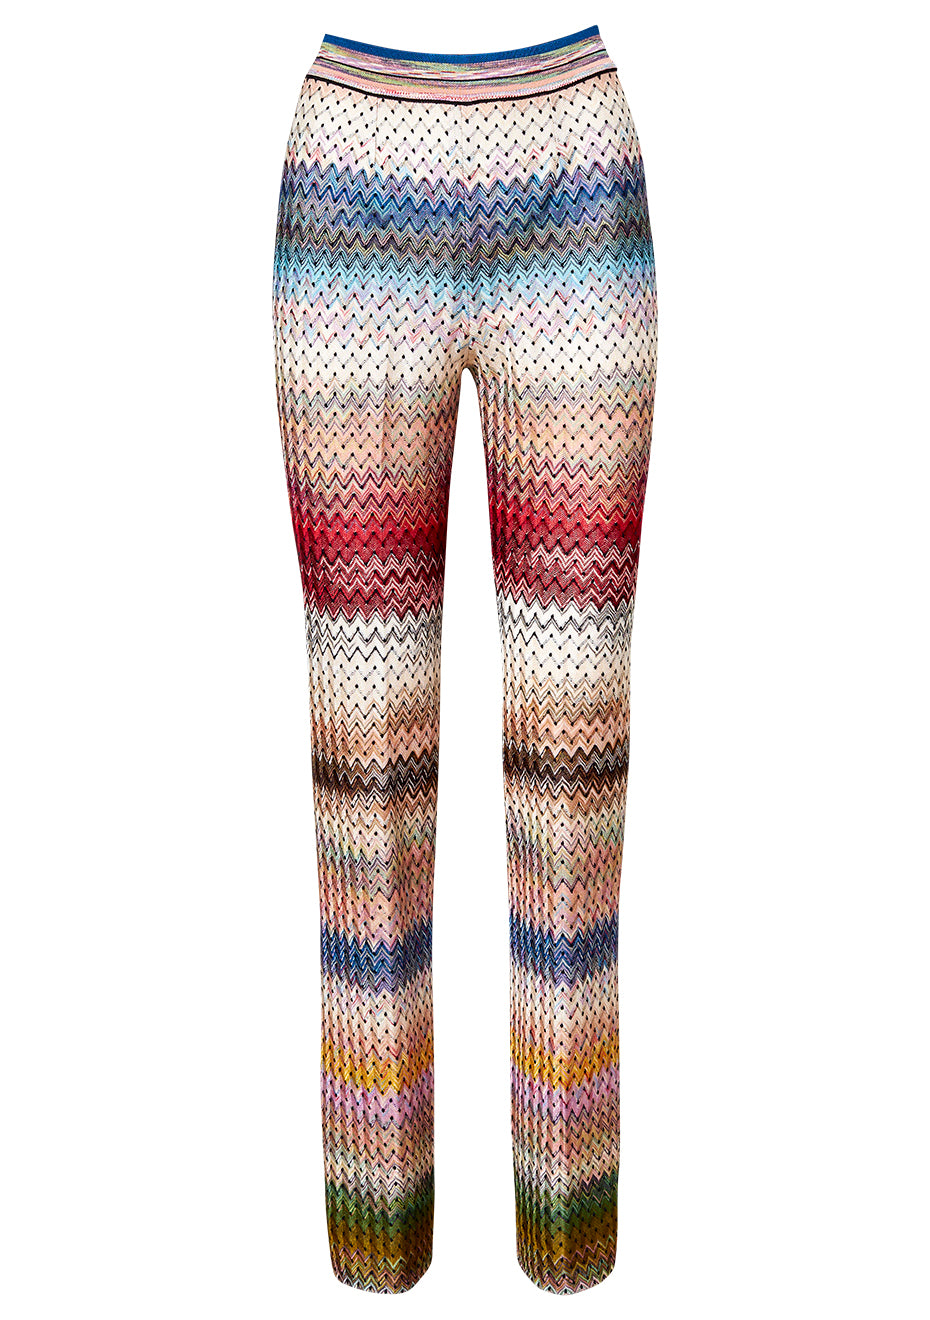 Colorful Wool Pants